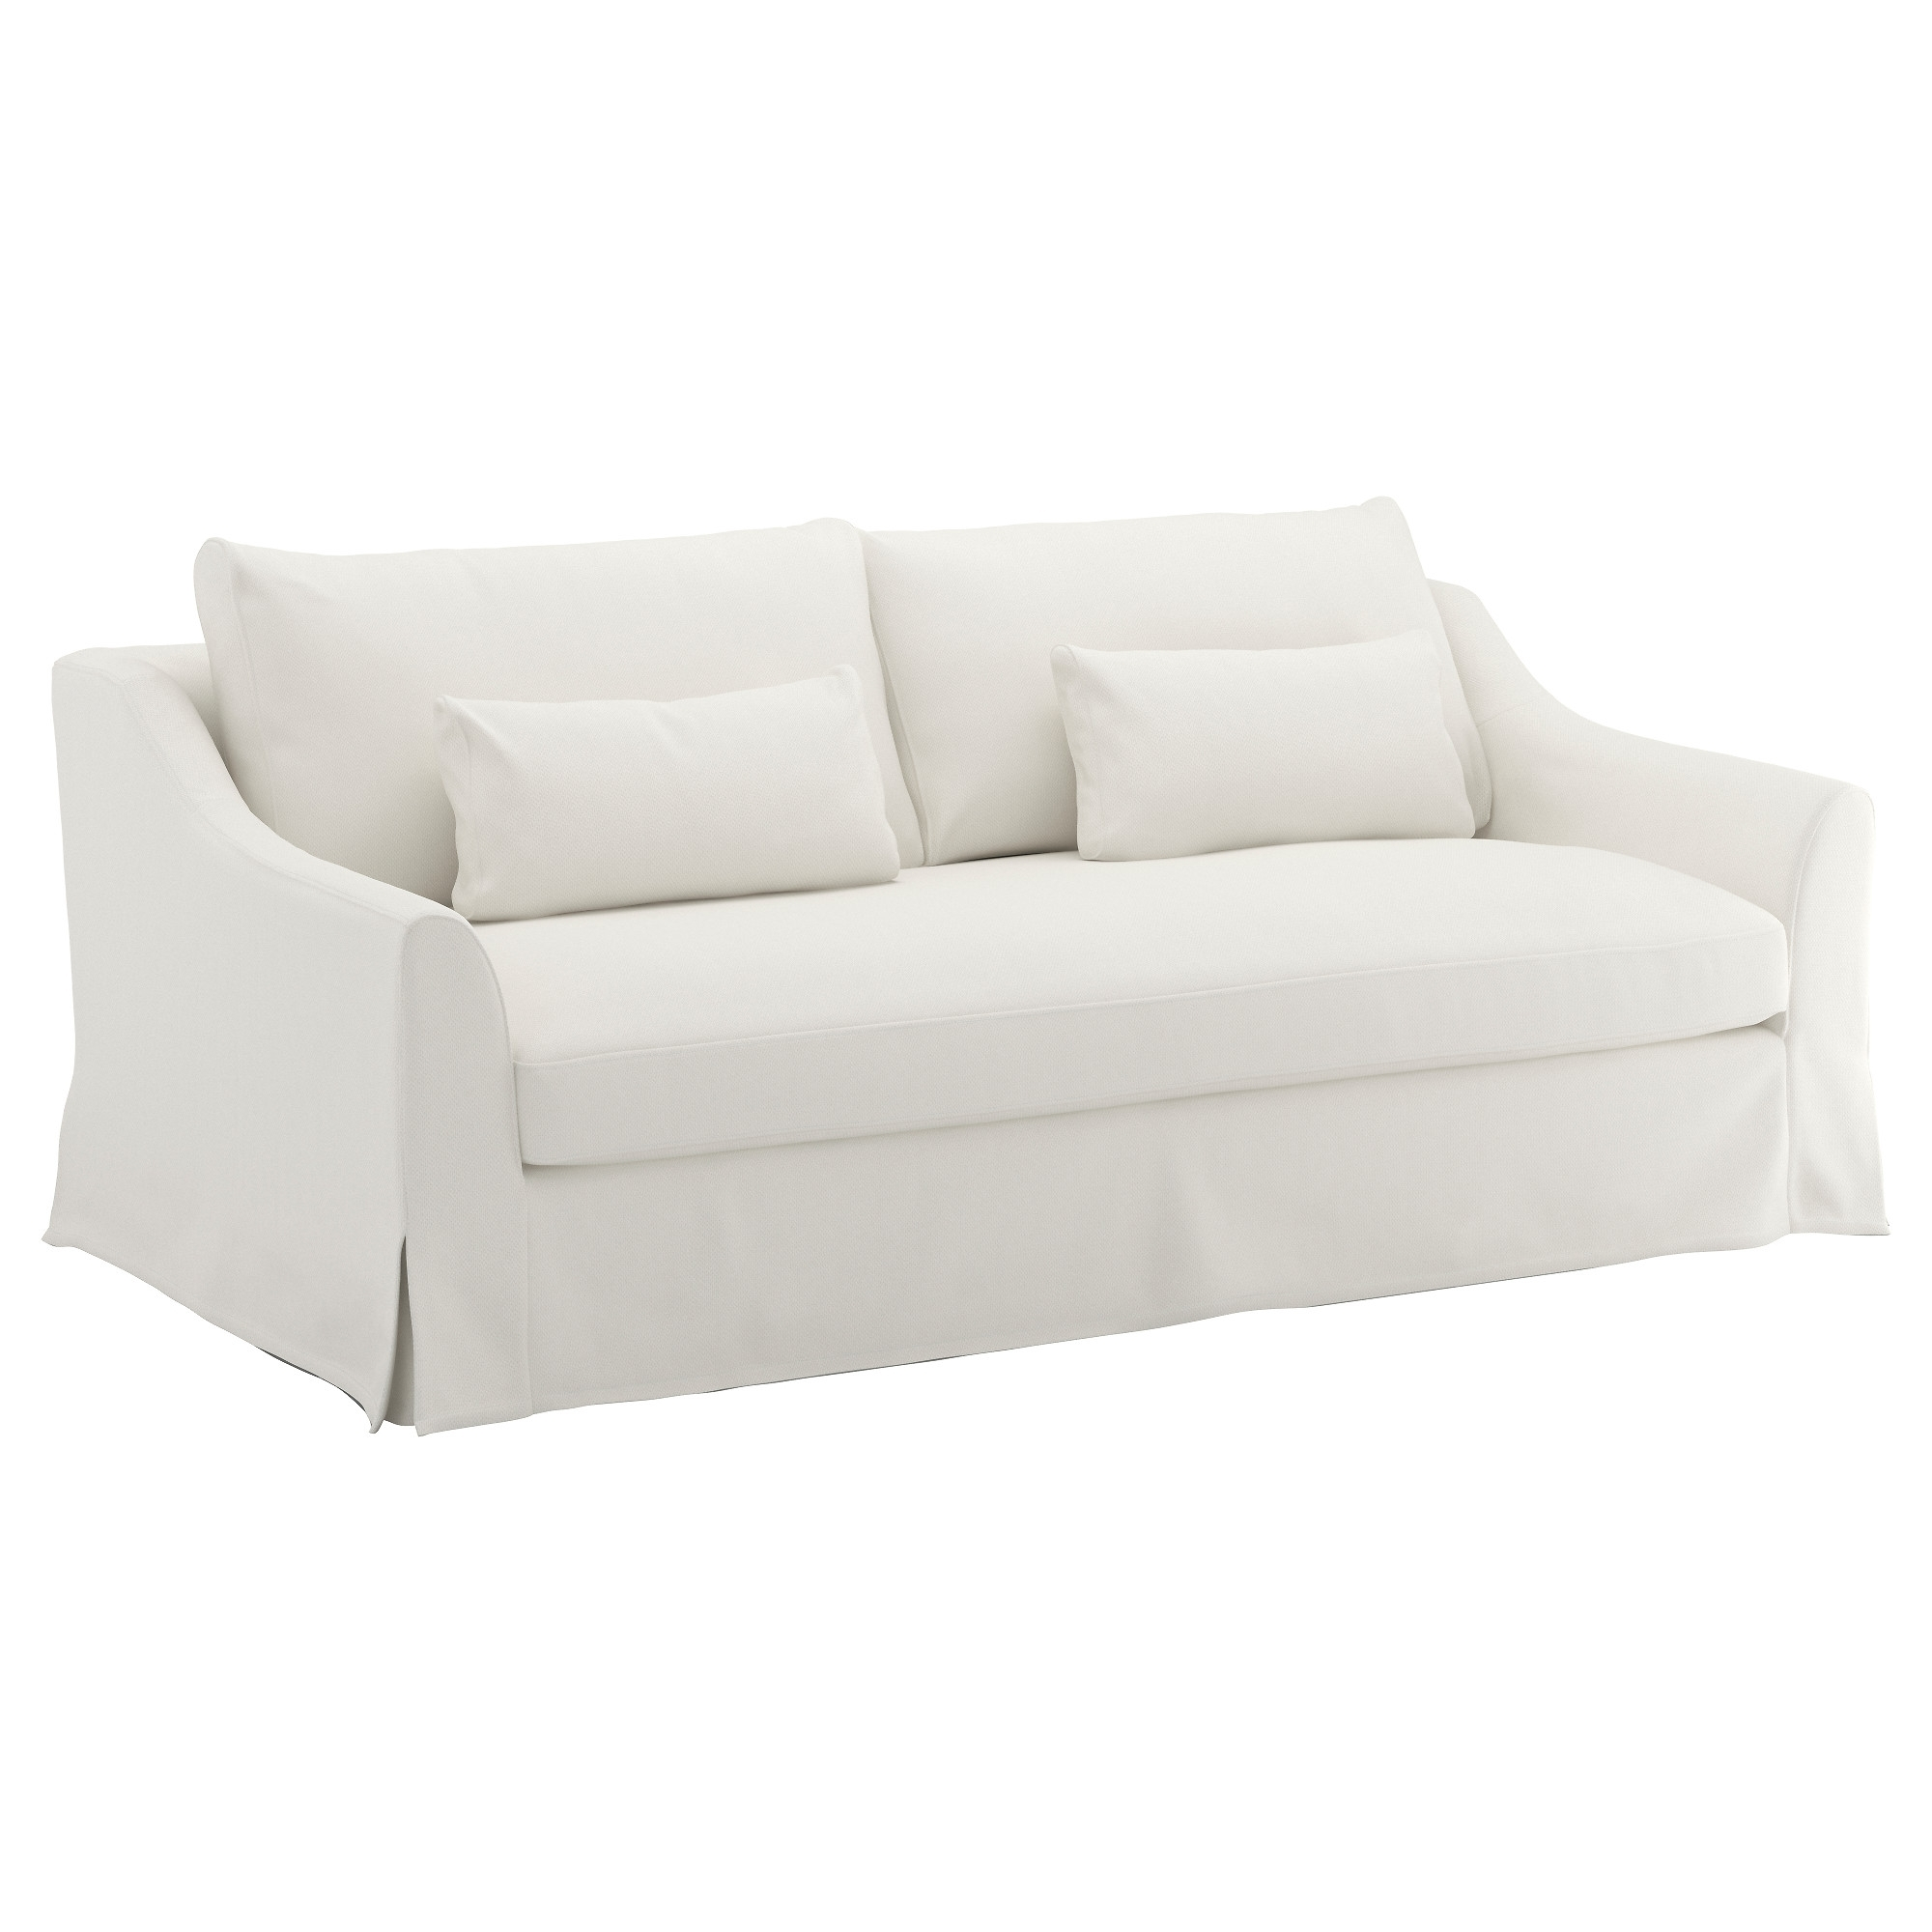 White Sofa Chairs Within Fashionable Armchair : Pull Out Sleeper Chair Ikea Chairs Wooden Arm Chair (View 20 of 20)